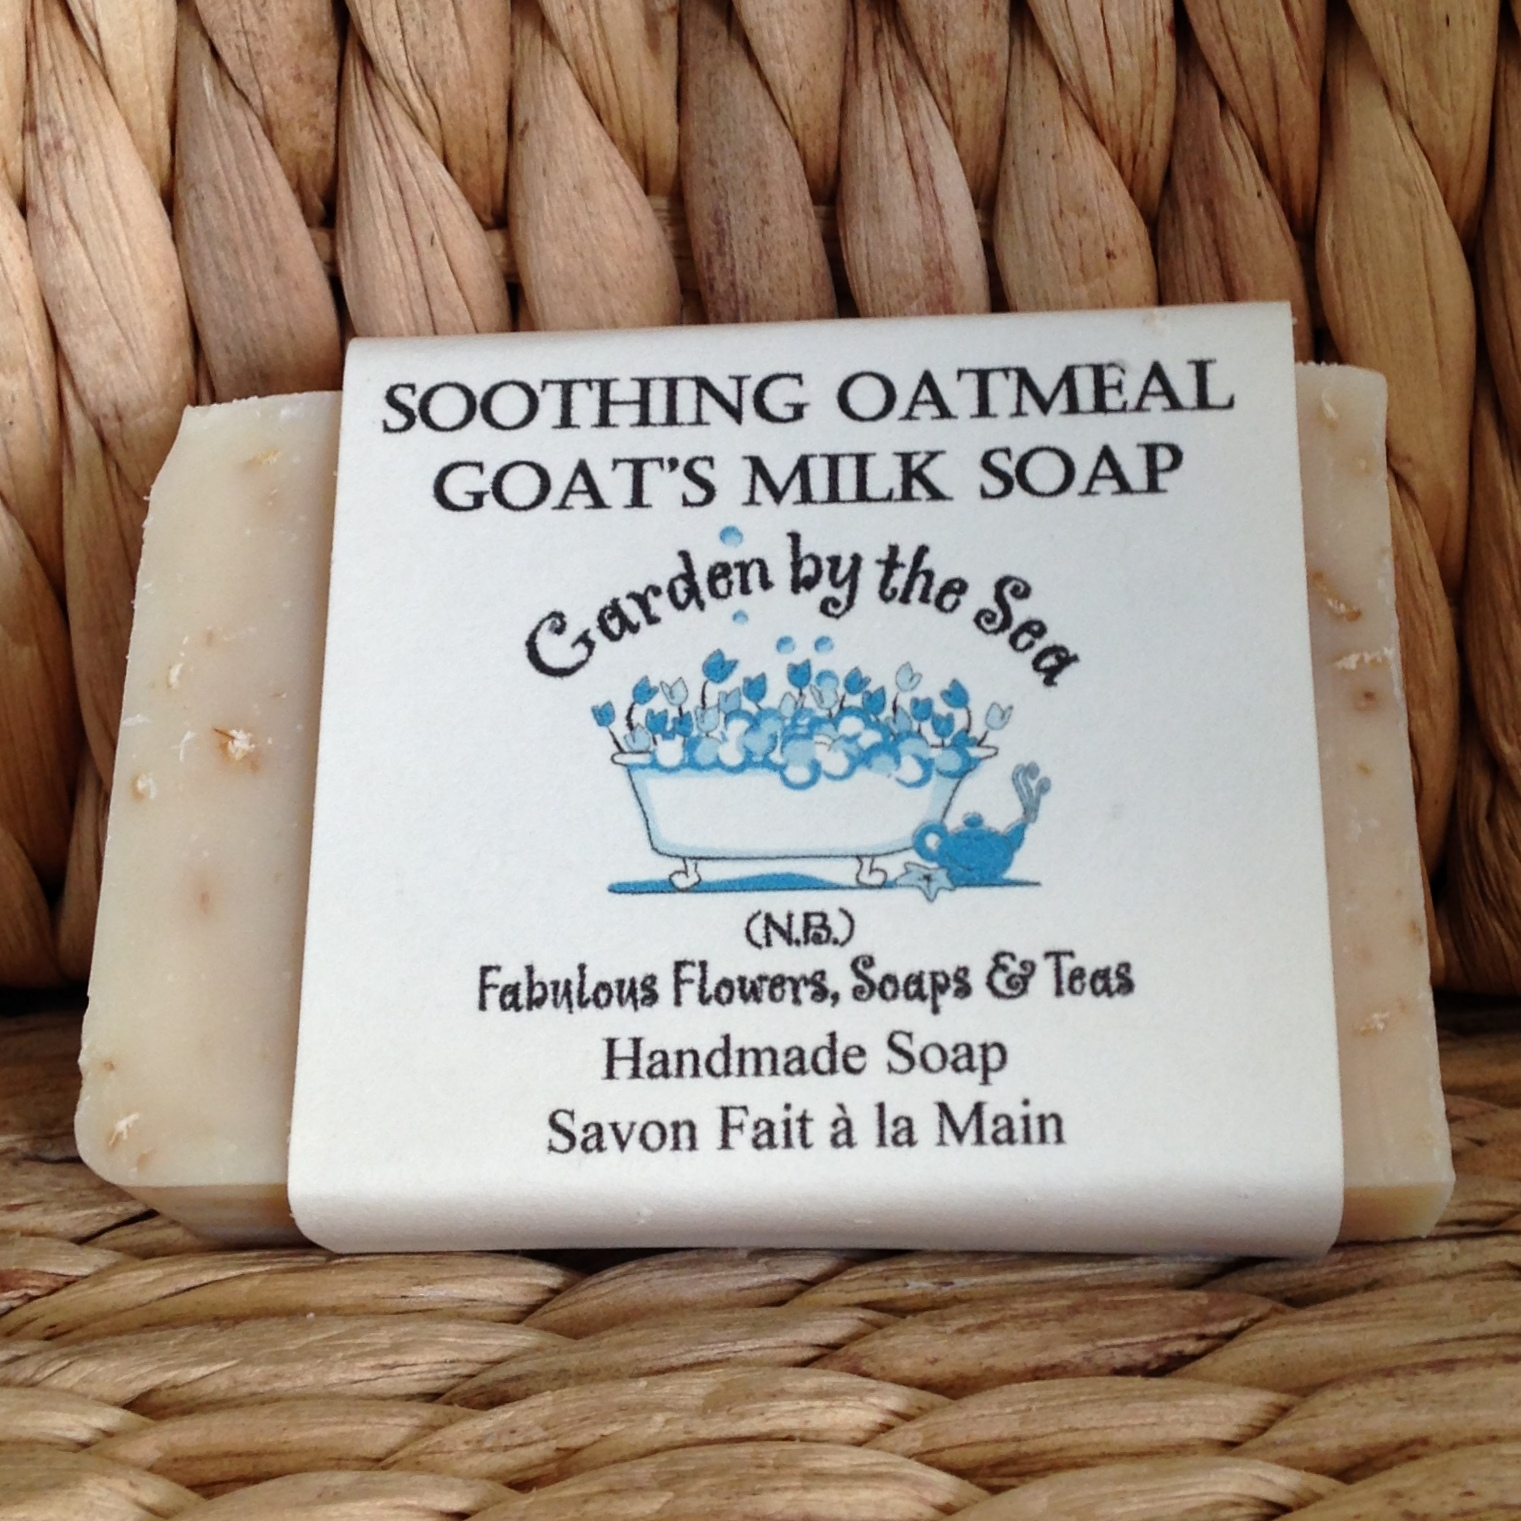 Soothing Oatmeal soap